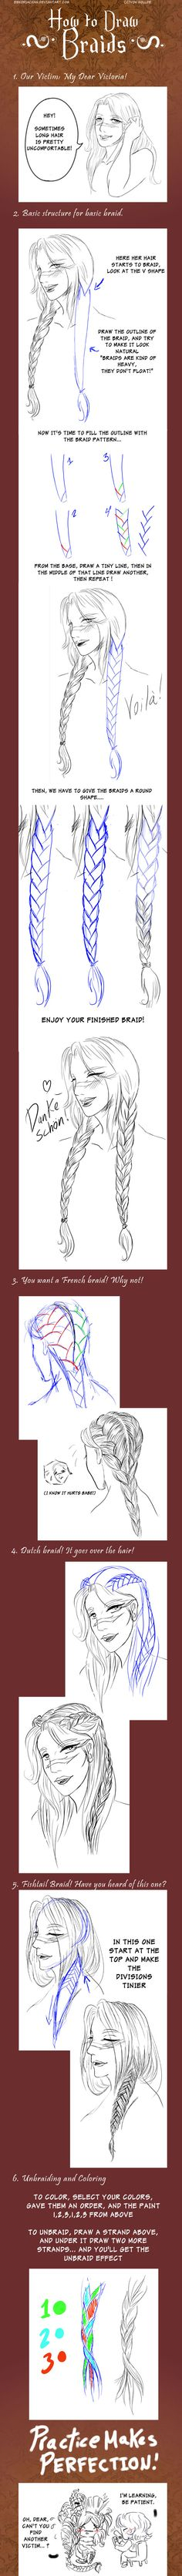 more braid tutorials ✤ || CHARACTER DESIGN REFERENCES | Find more at https://www.facebook.com/CharacterDesignReferences if you're looking for: #line #art #character #design #model #sheet #illustration #expressions #best #concept #animation #drawing #archive #library #reference #anatomy #traditional #draw #development #artist #pose #settei #gestures #how #to #tutorial #conceptart #modelsheet #cartoon #hair